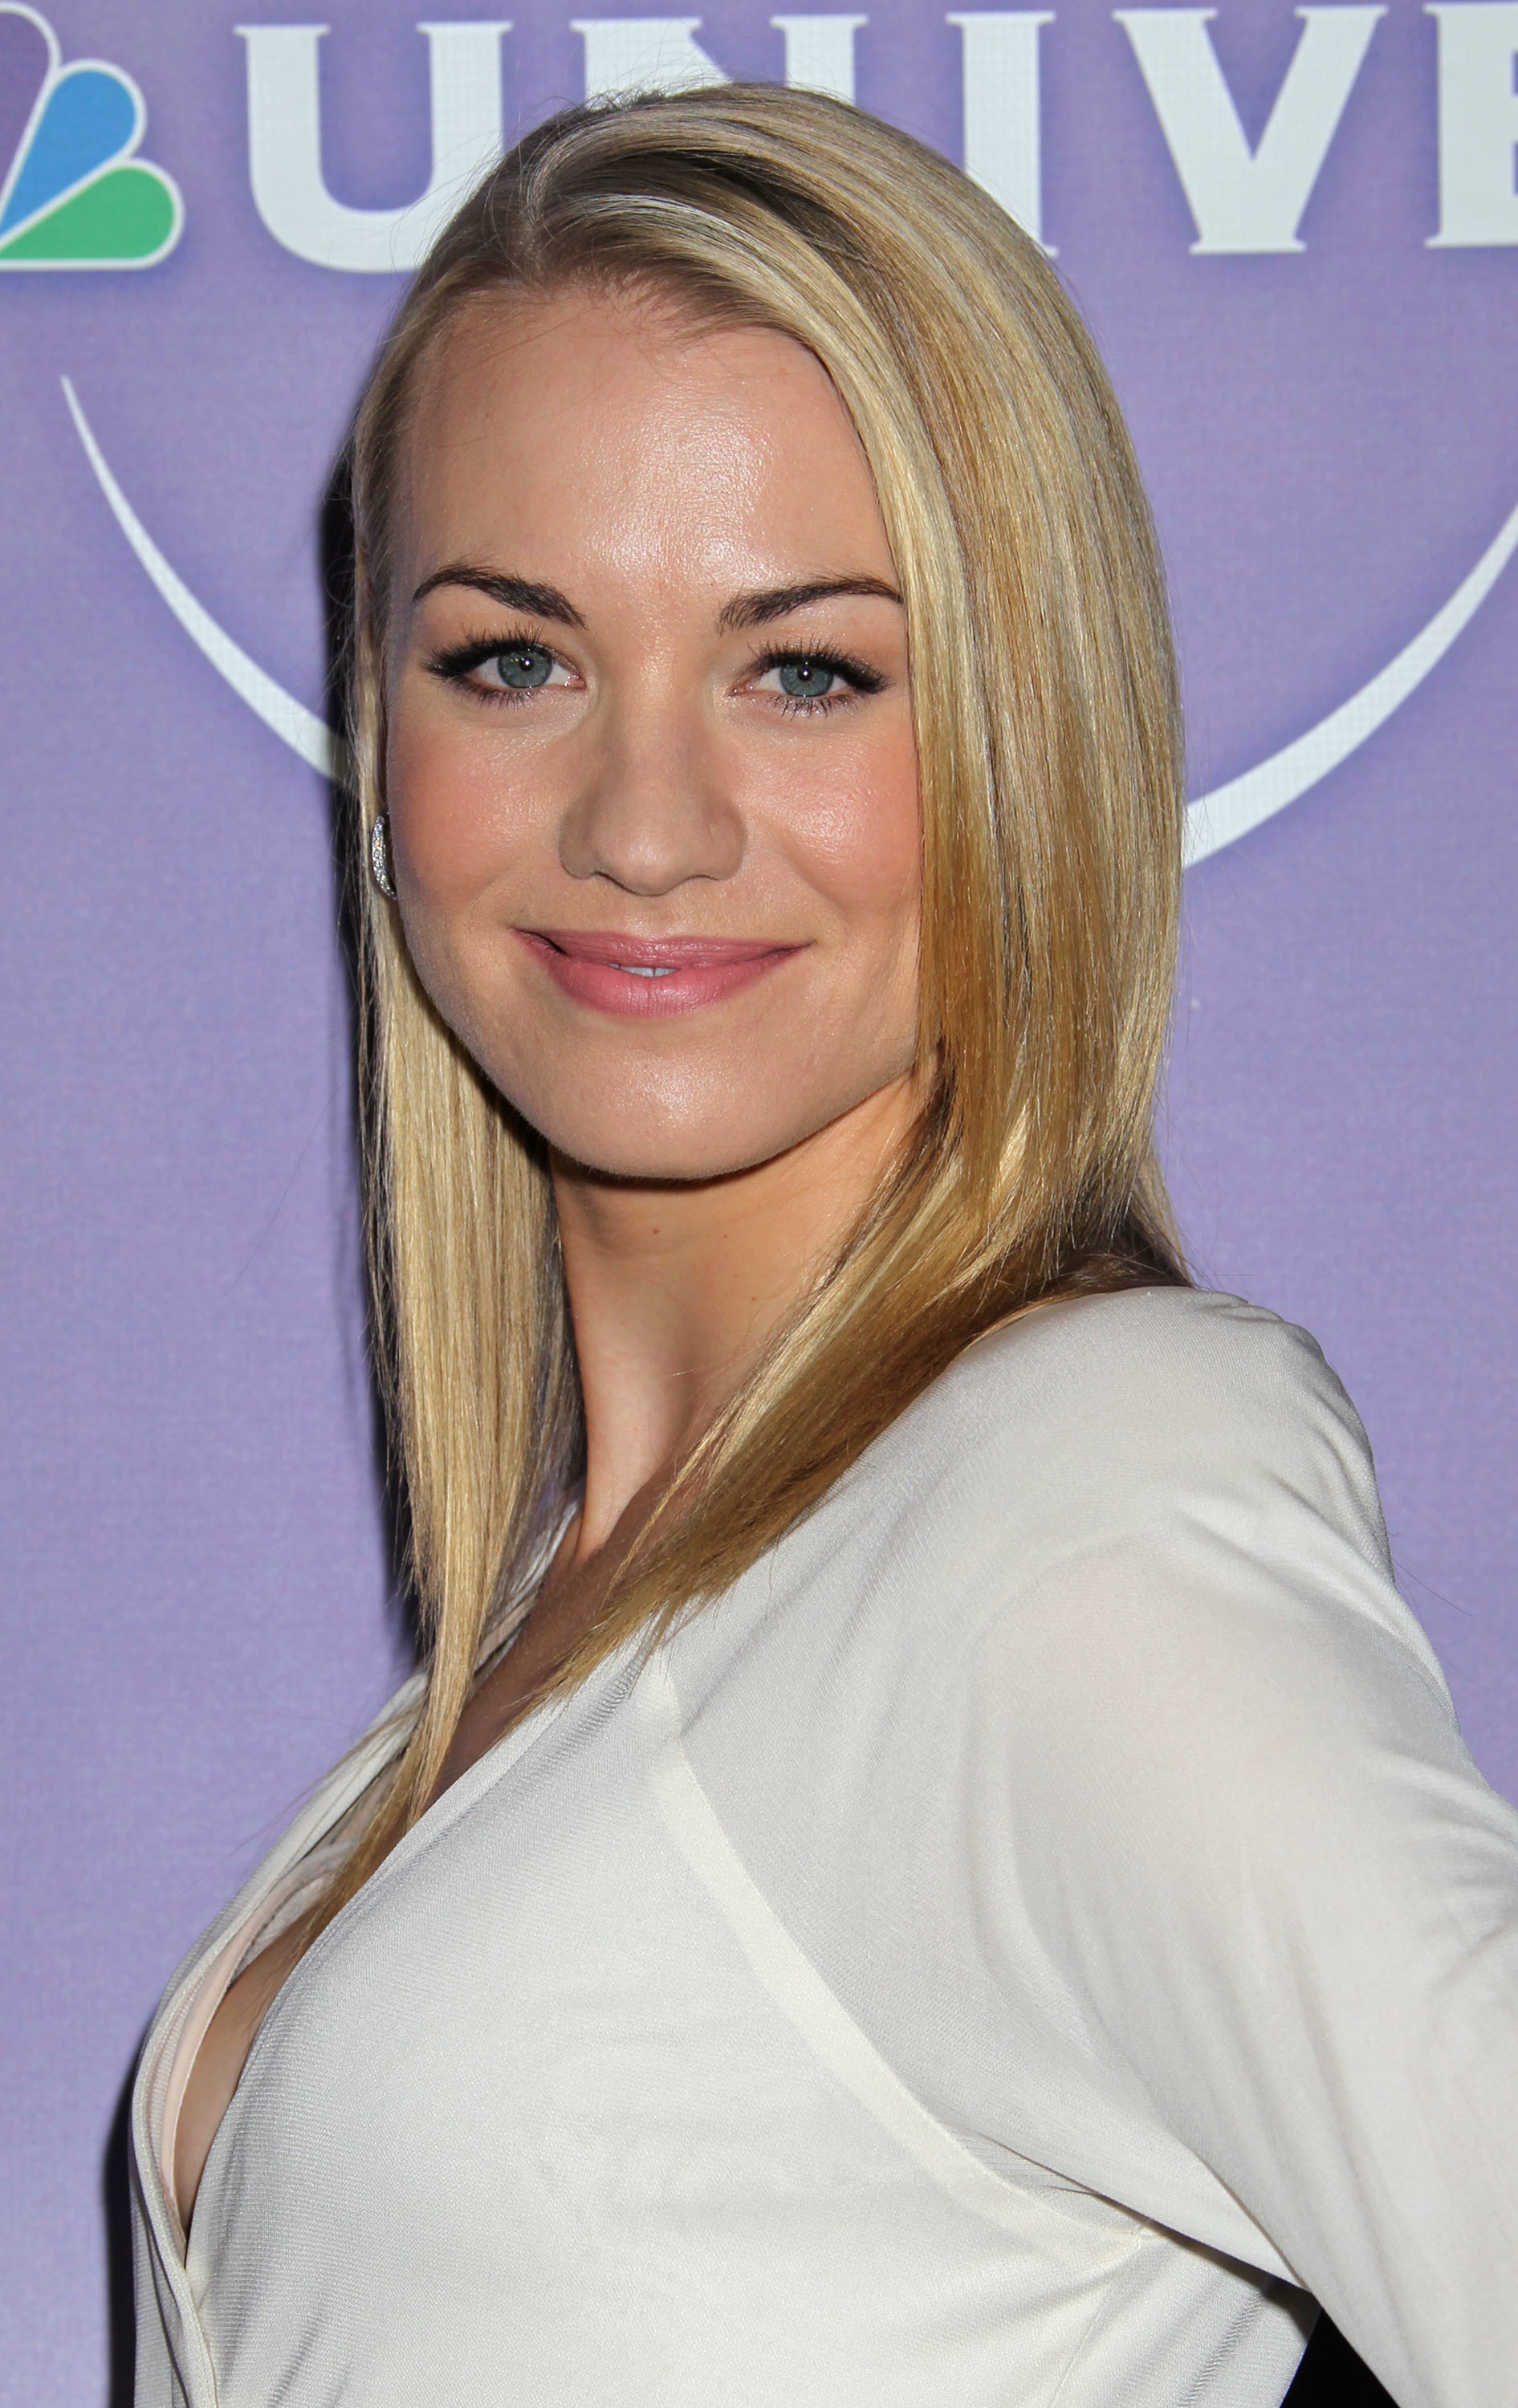 Yvonne strahovski Celebrity HD Wallpaper